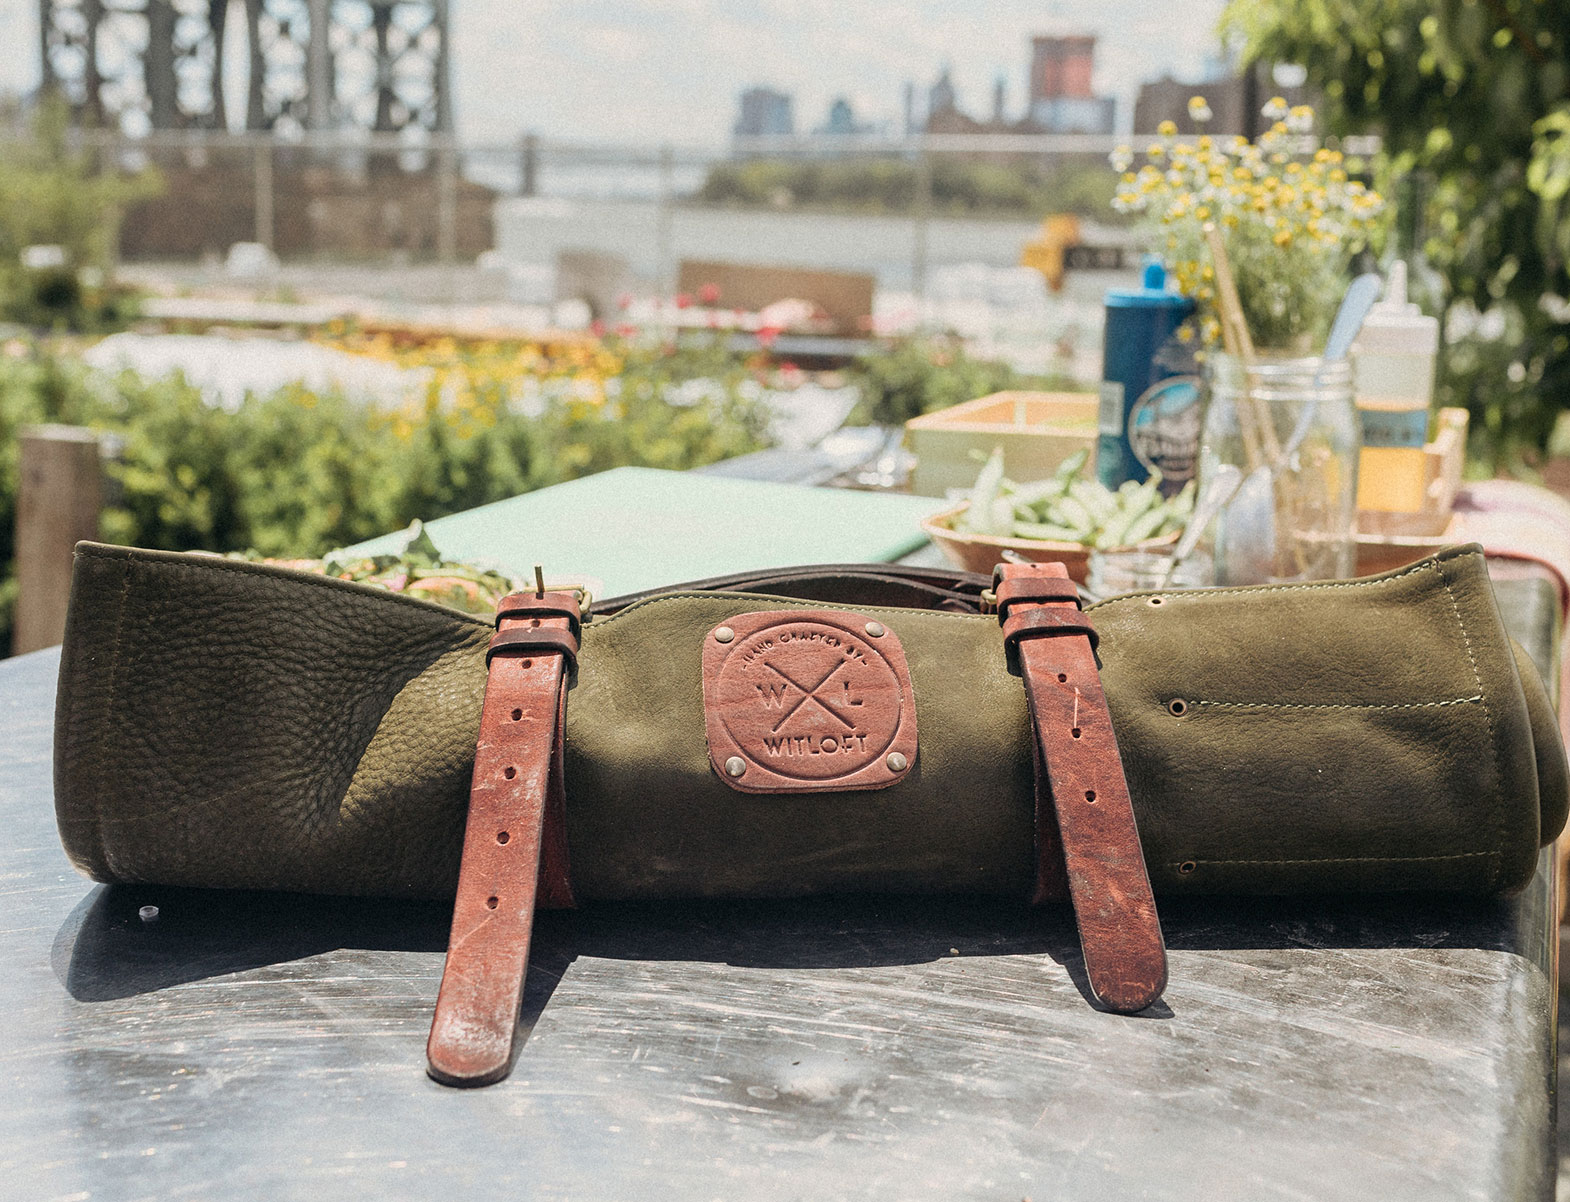 WITLOFT Cooking in Brooklyn Story forest knife roll